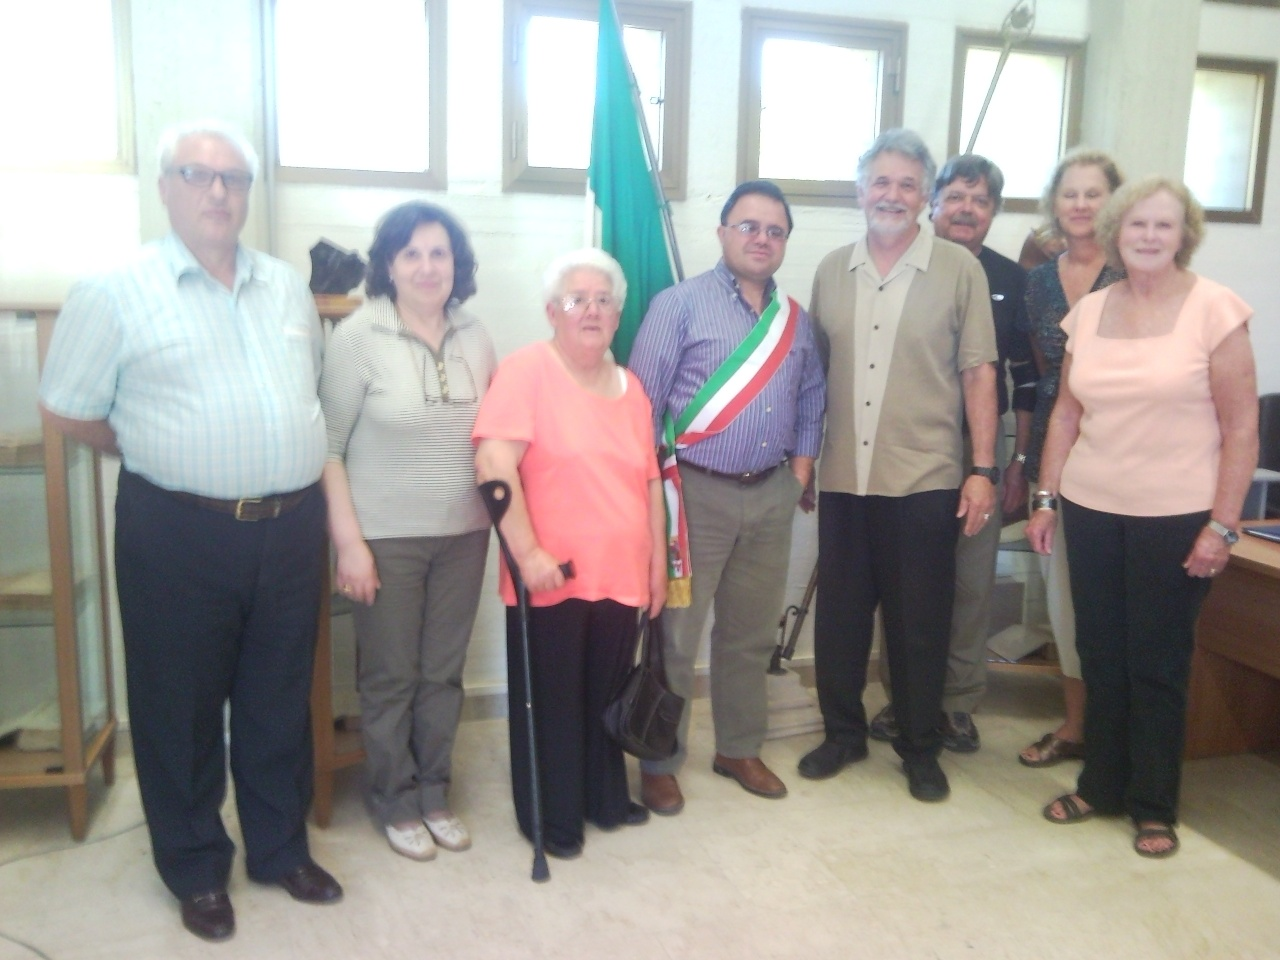 Ventimiglia_di_Sicilia_City_Hall_,_Mannina_Family_group